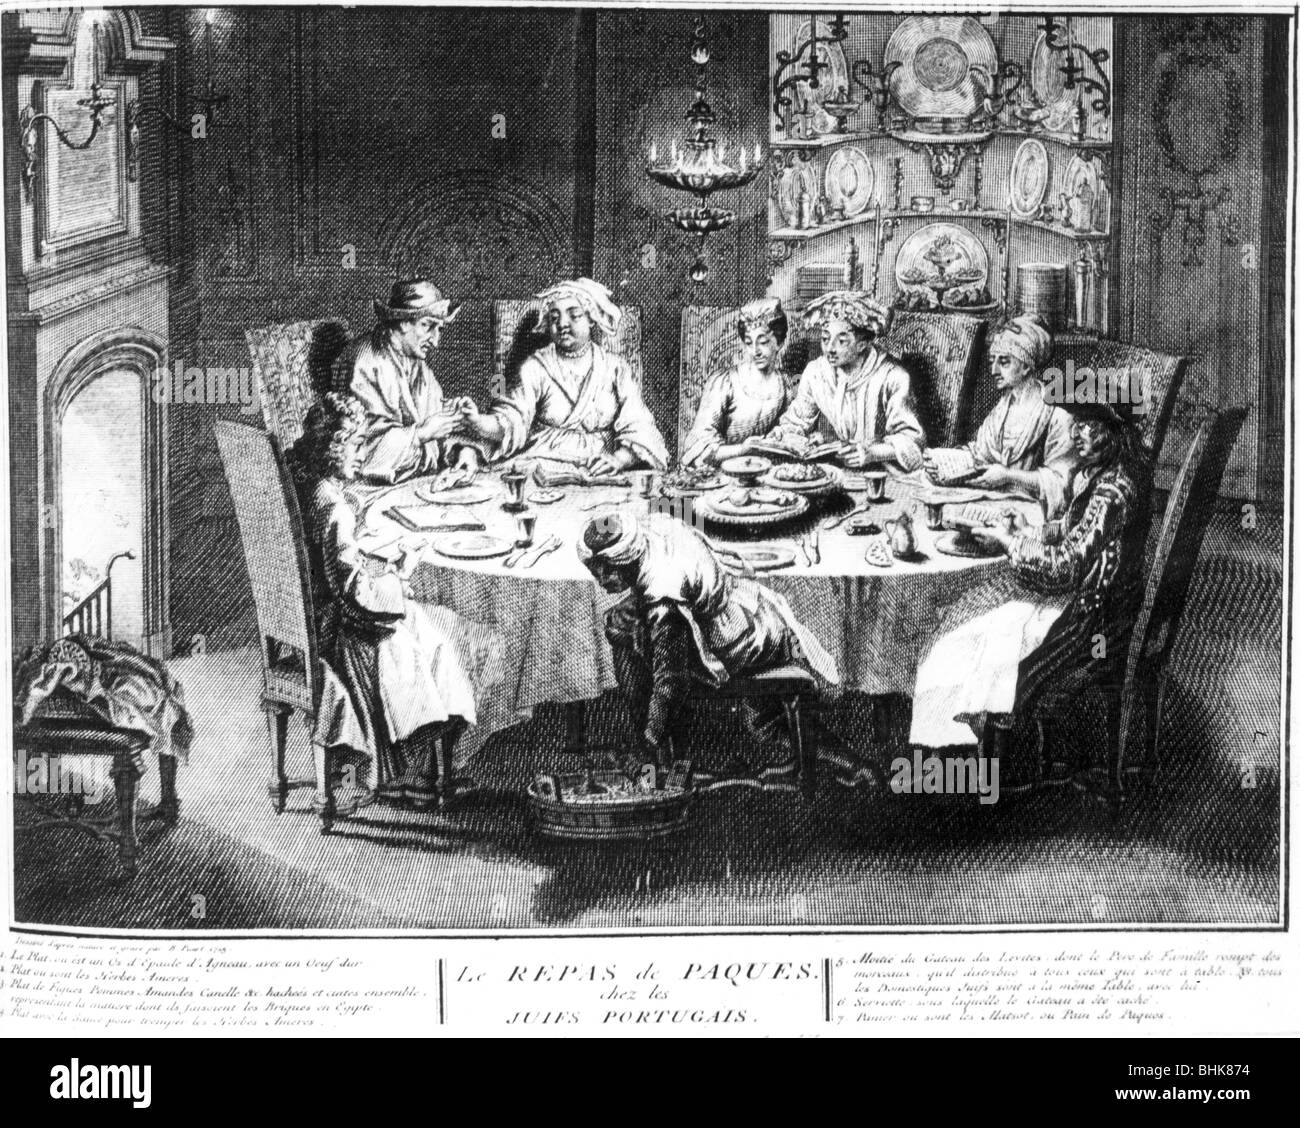 Portuguese Jews at Passover, (18th century?). - Stock Image